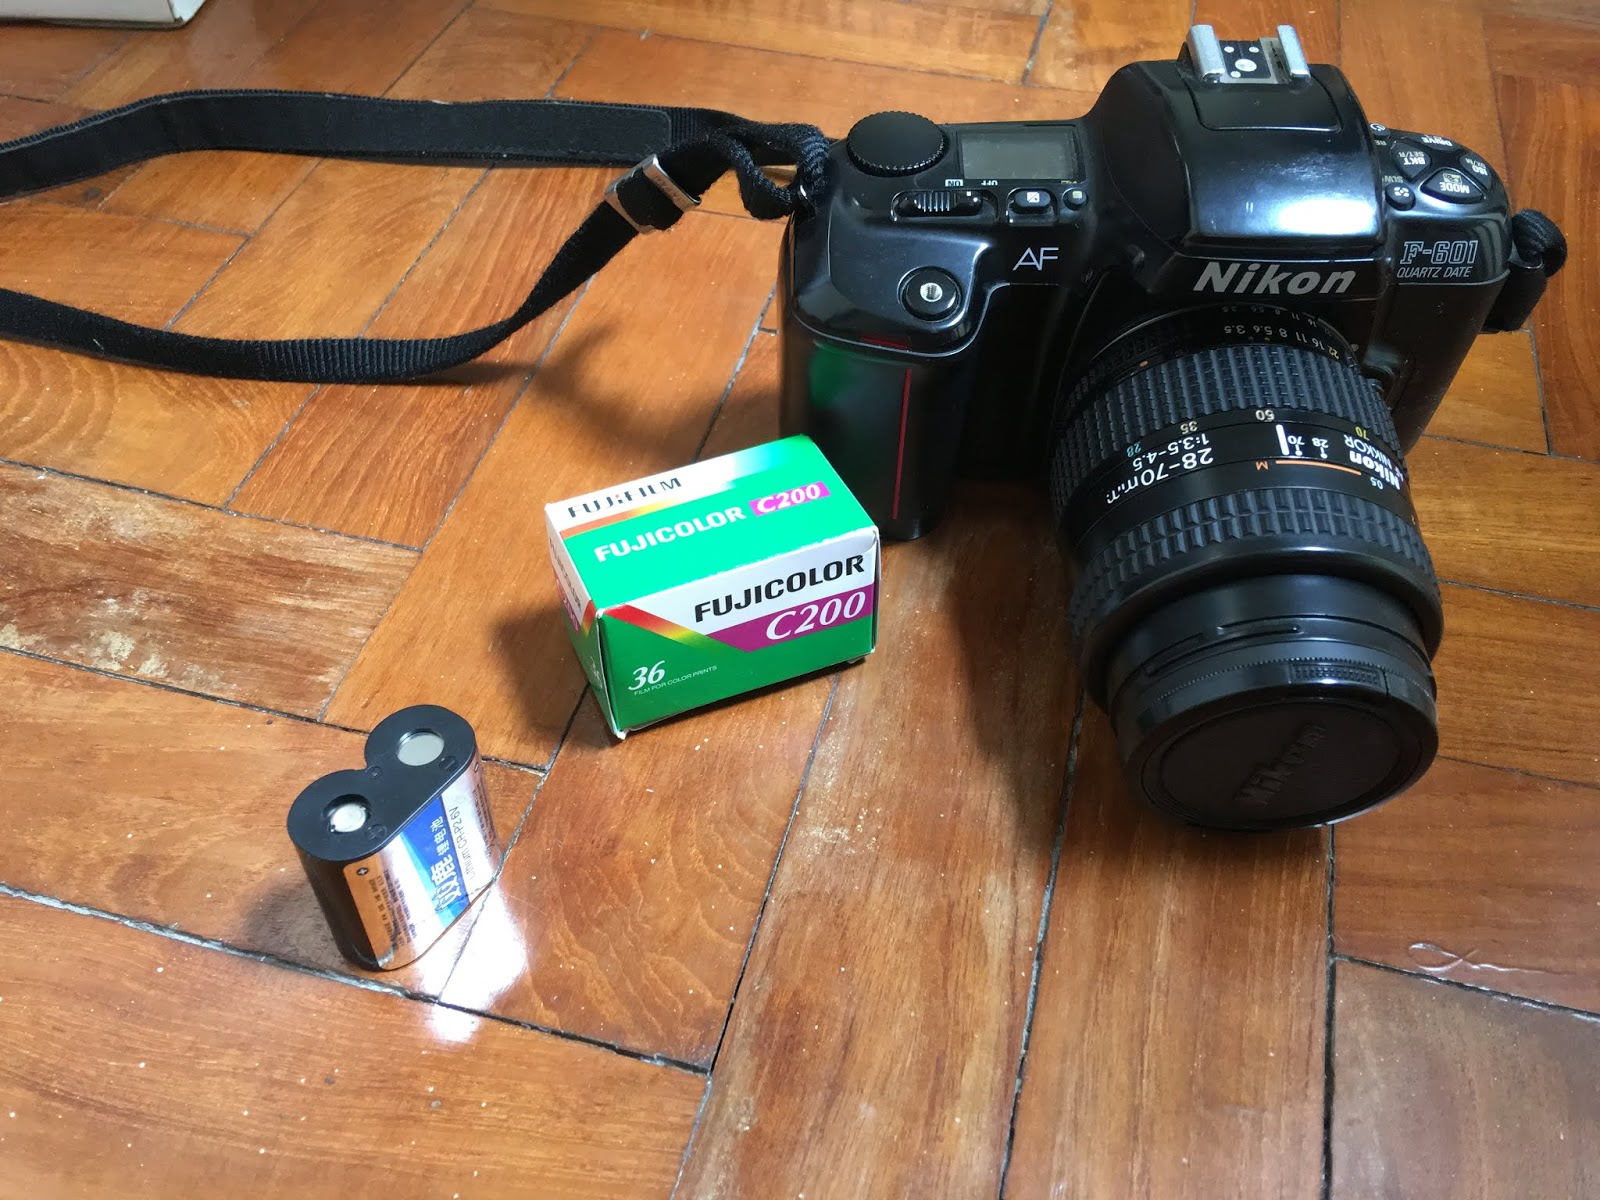 Leothoughts Is The 1991 Nikon F601 Film Slr Camera Relevant In 2018 Fujicolor C200 35mm Fujifilm Singapore Ridiculously Expensive A Basic Colour Cost 890 And That Was Exclusive Of Processing